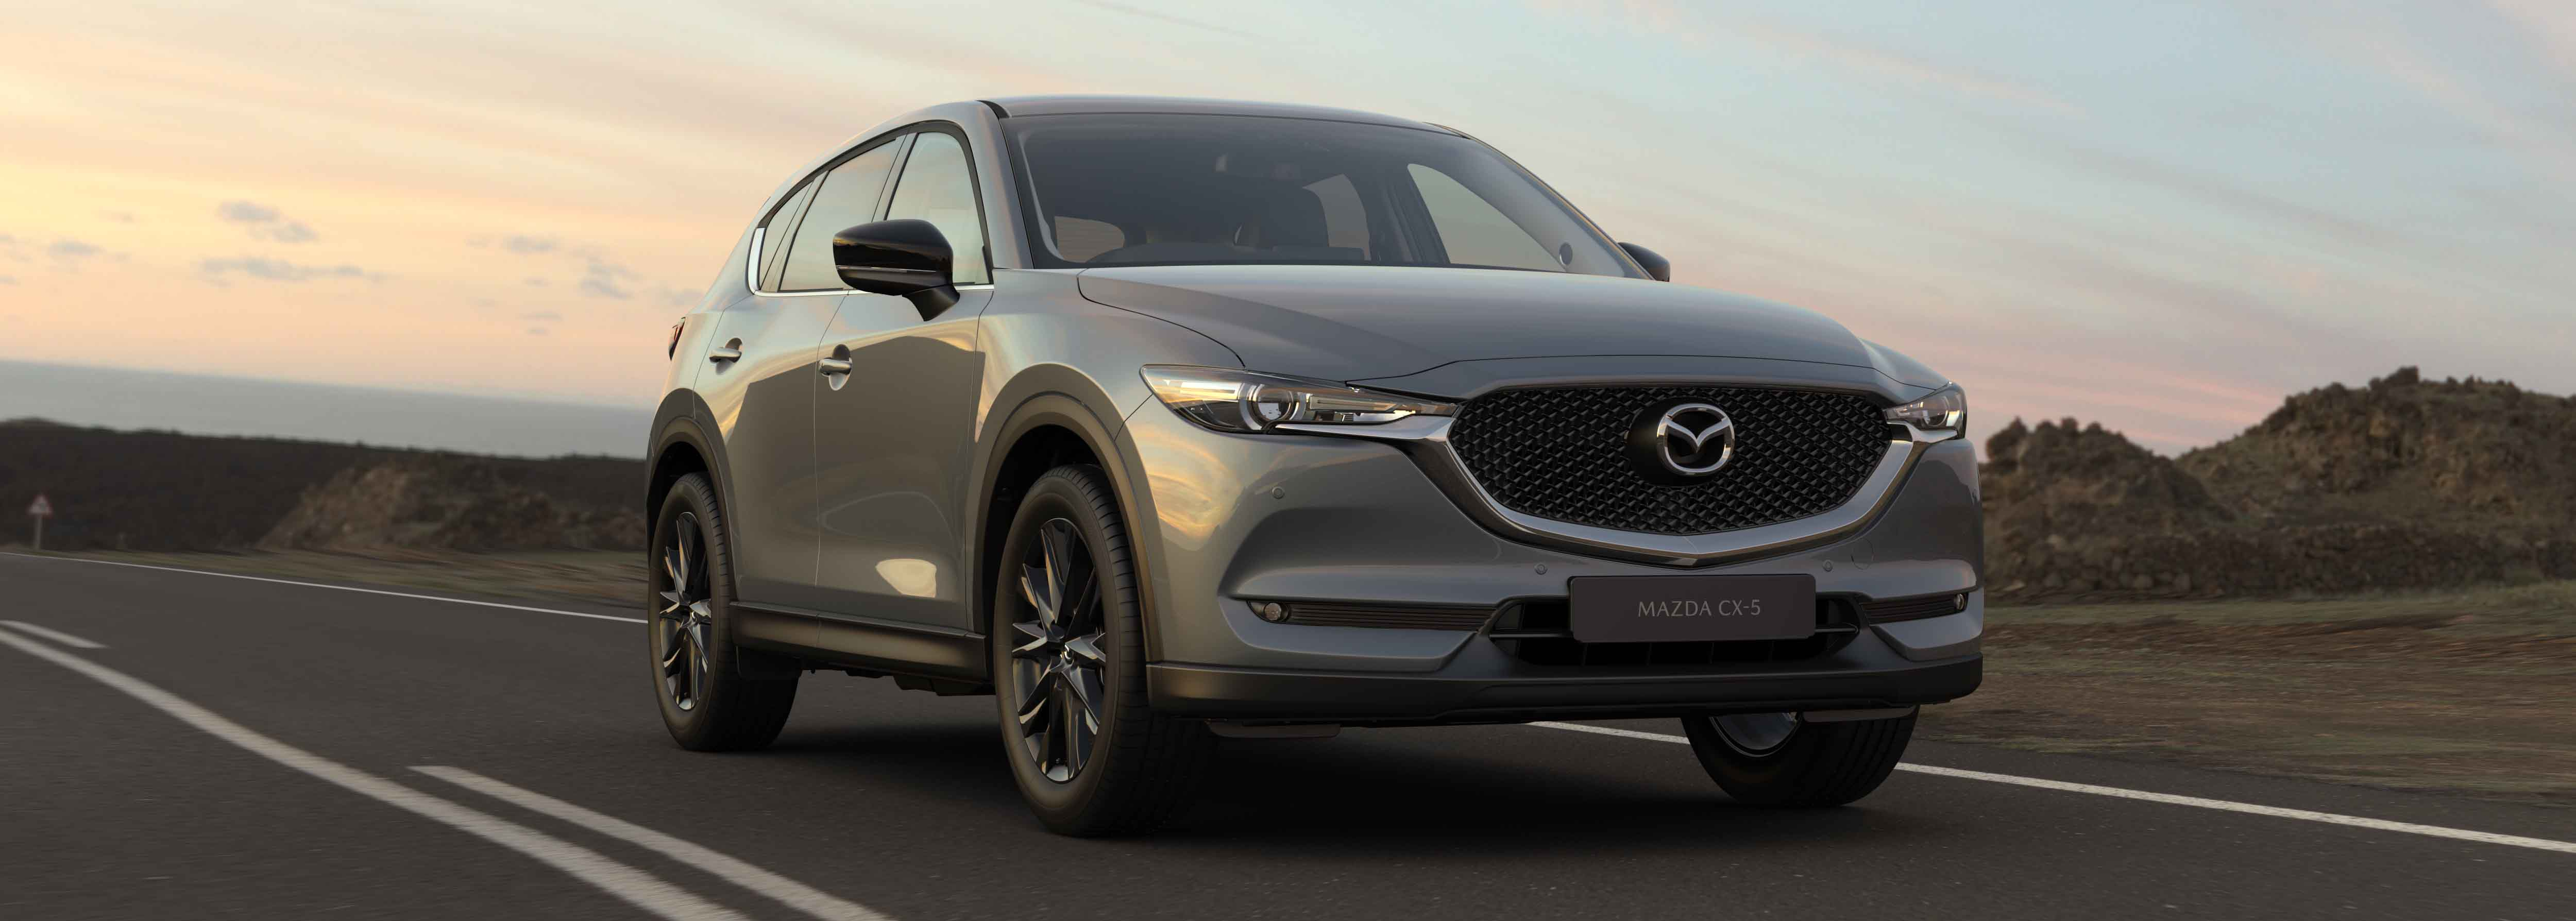 Mazda adds CX-5 Carbon Edition to range